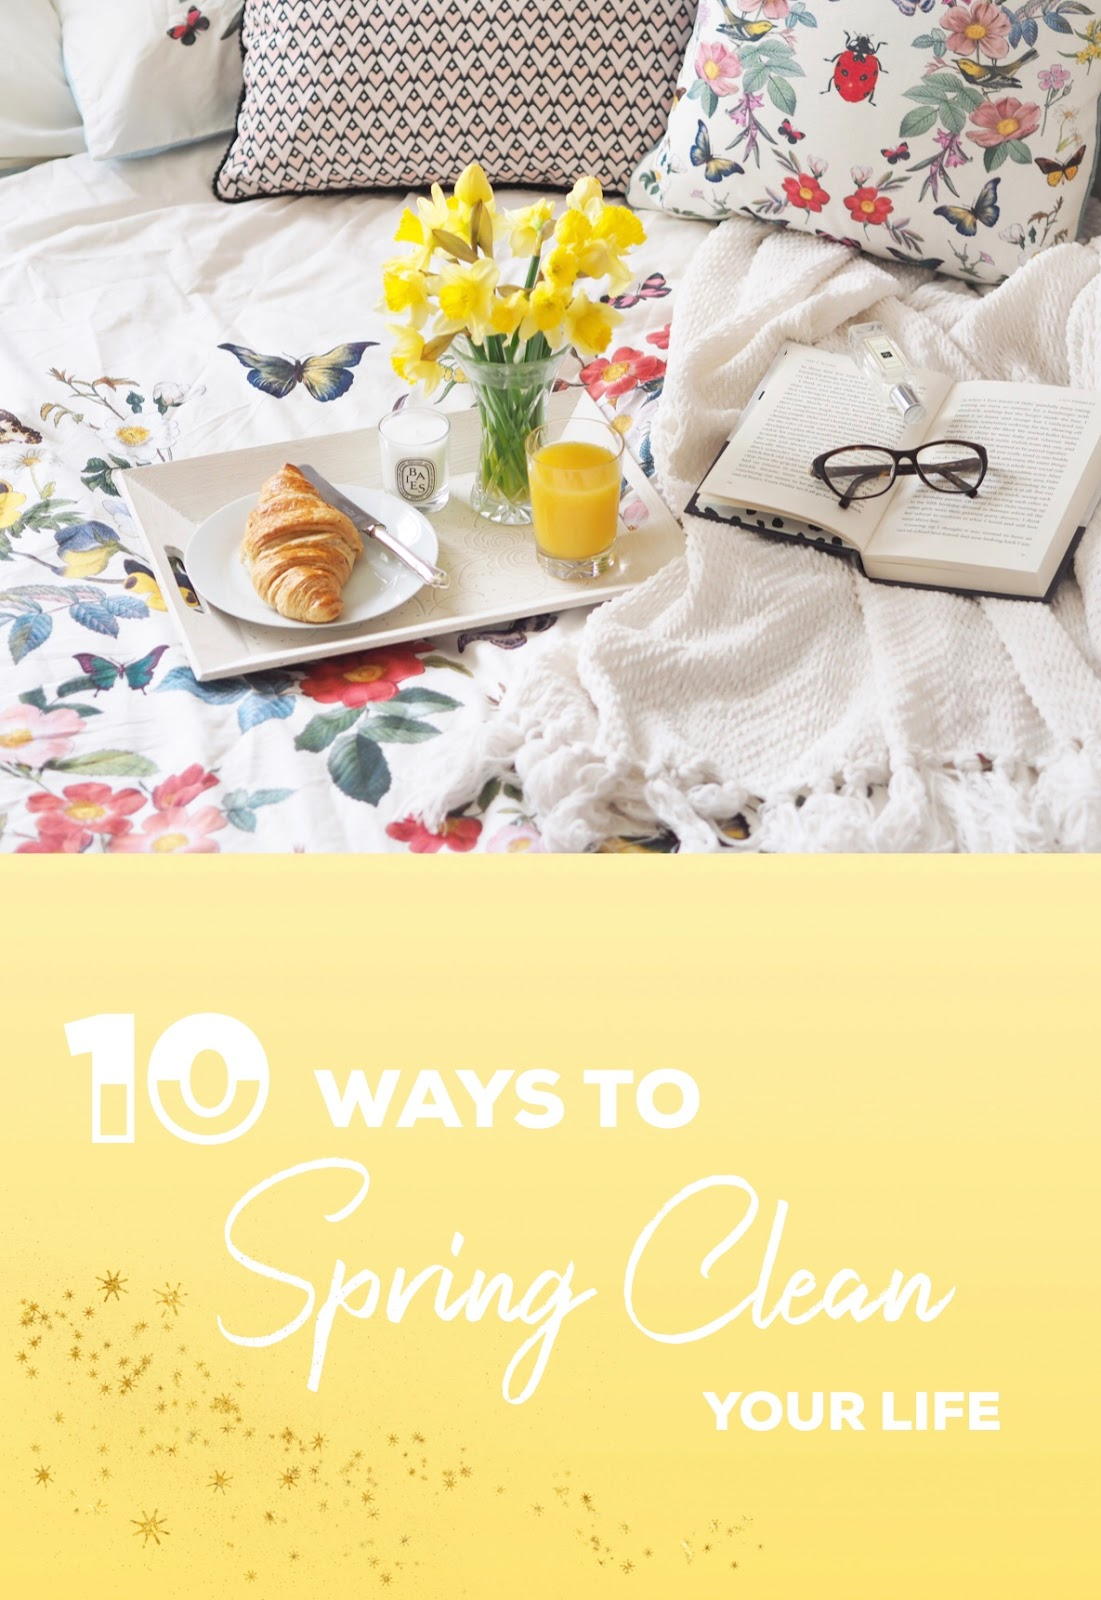 10 Ways To Spring Clean Your Life, Pinterest Image, Pin It, Pinterest Lifestyle, Pinterest Life Hacks, UK Blogger, Lifestyle Blogger, Homeware, Lifestyle Tips, Spring Inspiration, Oasis Fashion, Oasis Homeware, Interior Inspiration, Interior Ideas